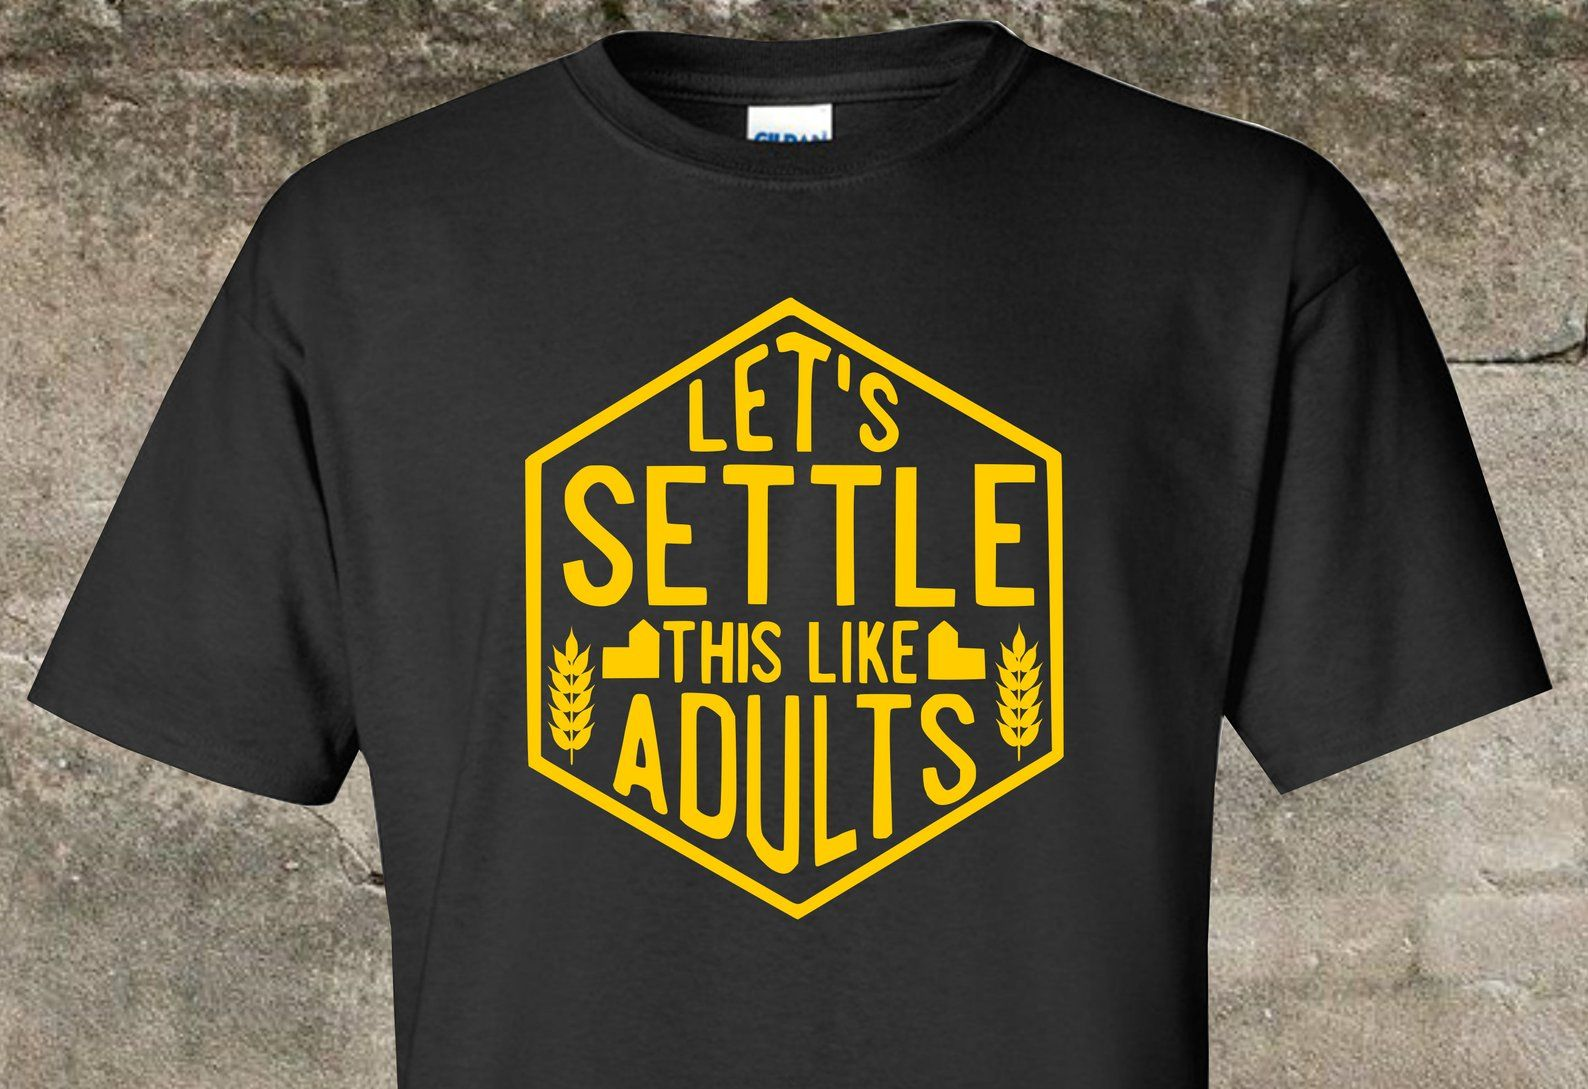 a2517513 Catan Shirt Let's Settle This Like Adults Funny Shirt | Etsy ...